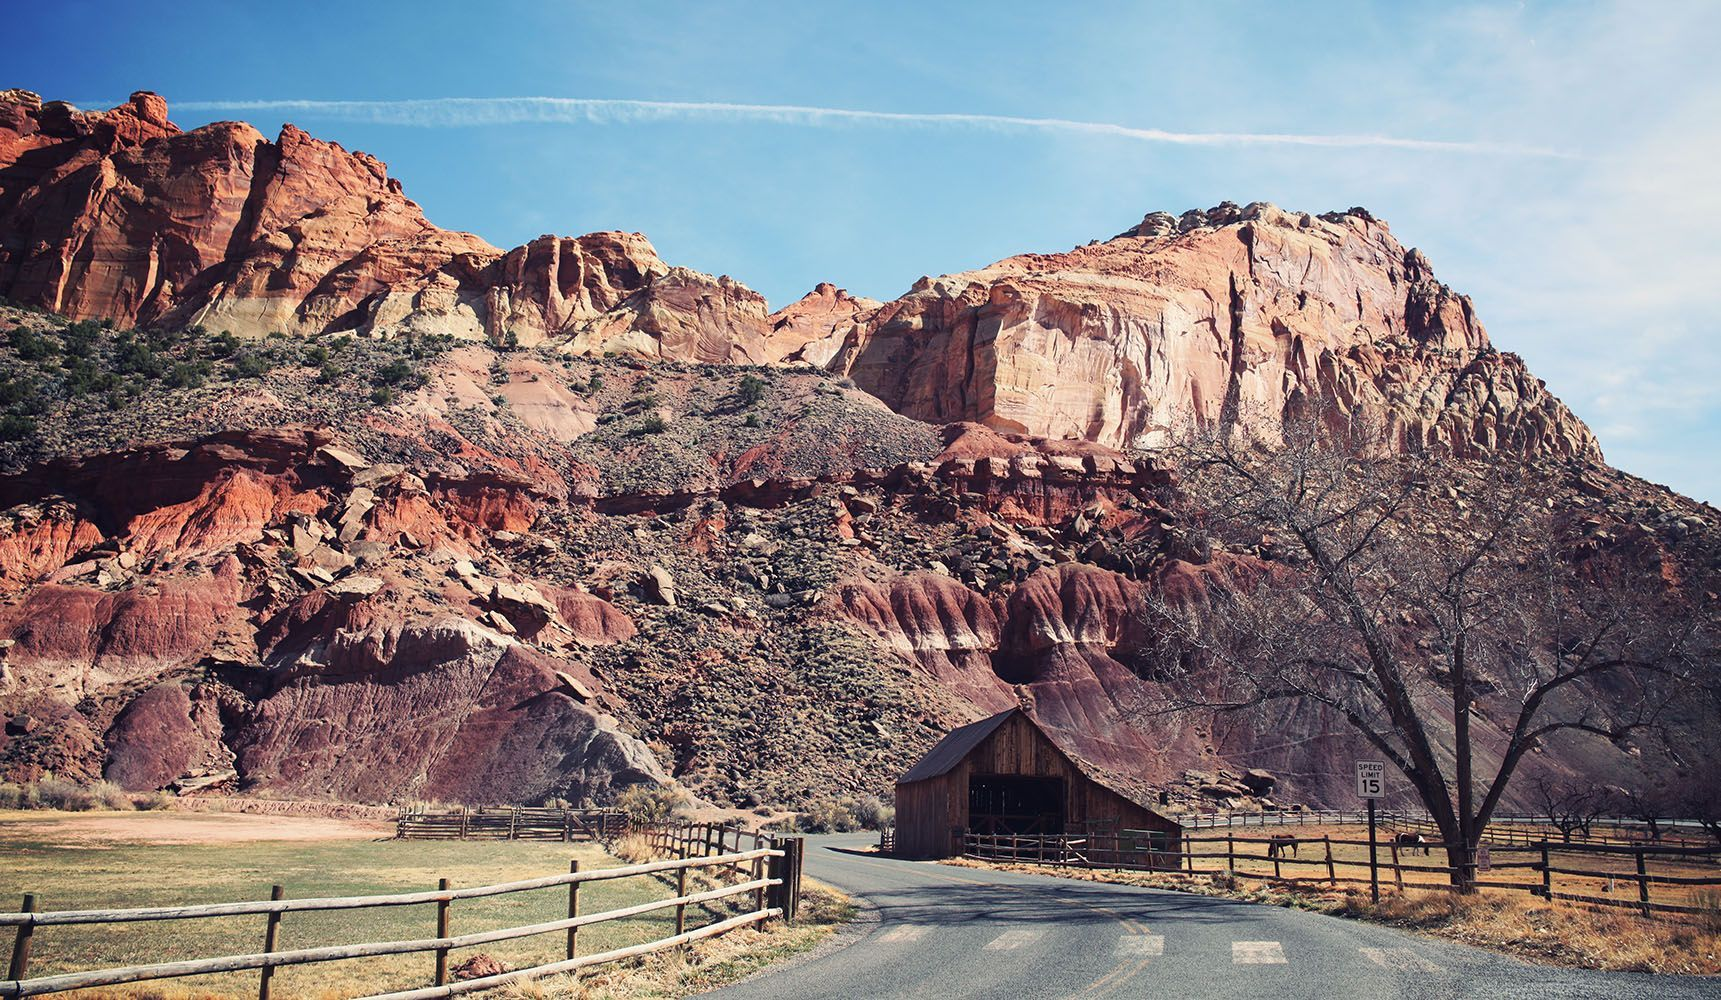 Road Trip USA : Capitol Reef et les routes de l'Utah #utahusa Capitol Reef National Park Utah USA Road trip Fruita #utahusa